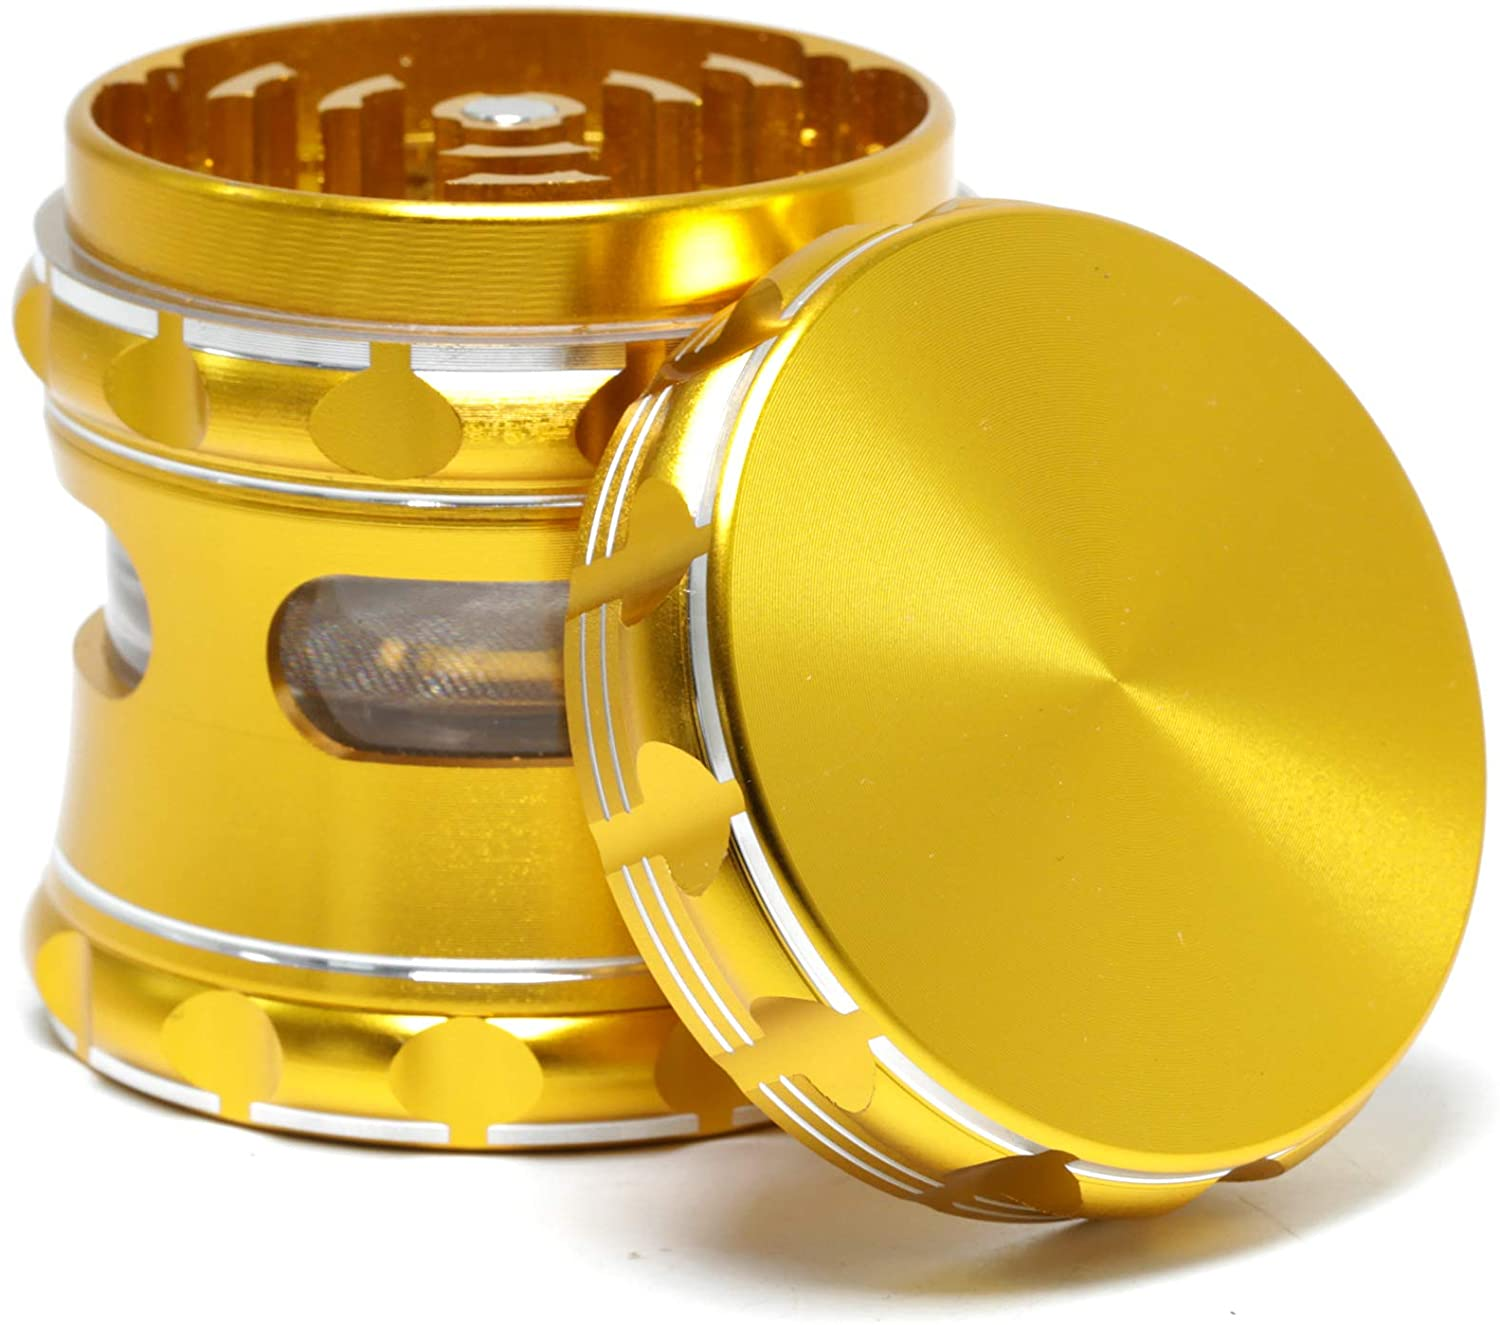 Aluminum alloy material CNC anodized 2.5 inch 5 layer herb grinder (gold)